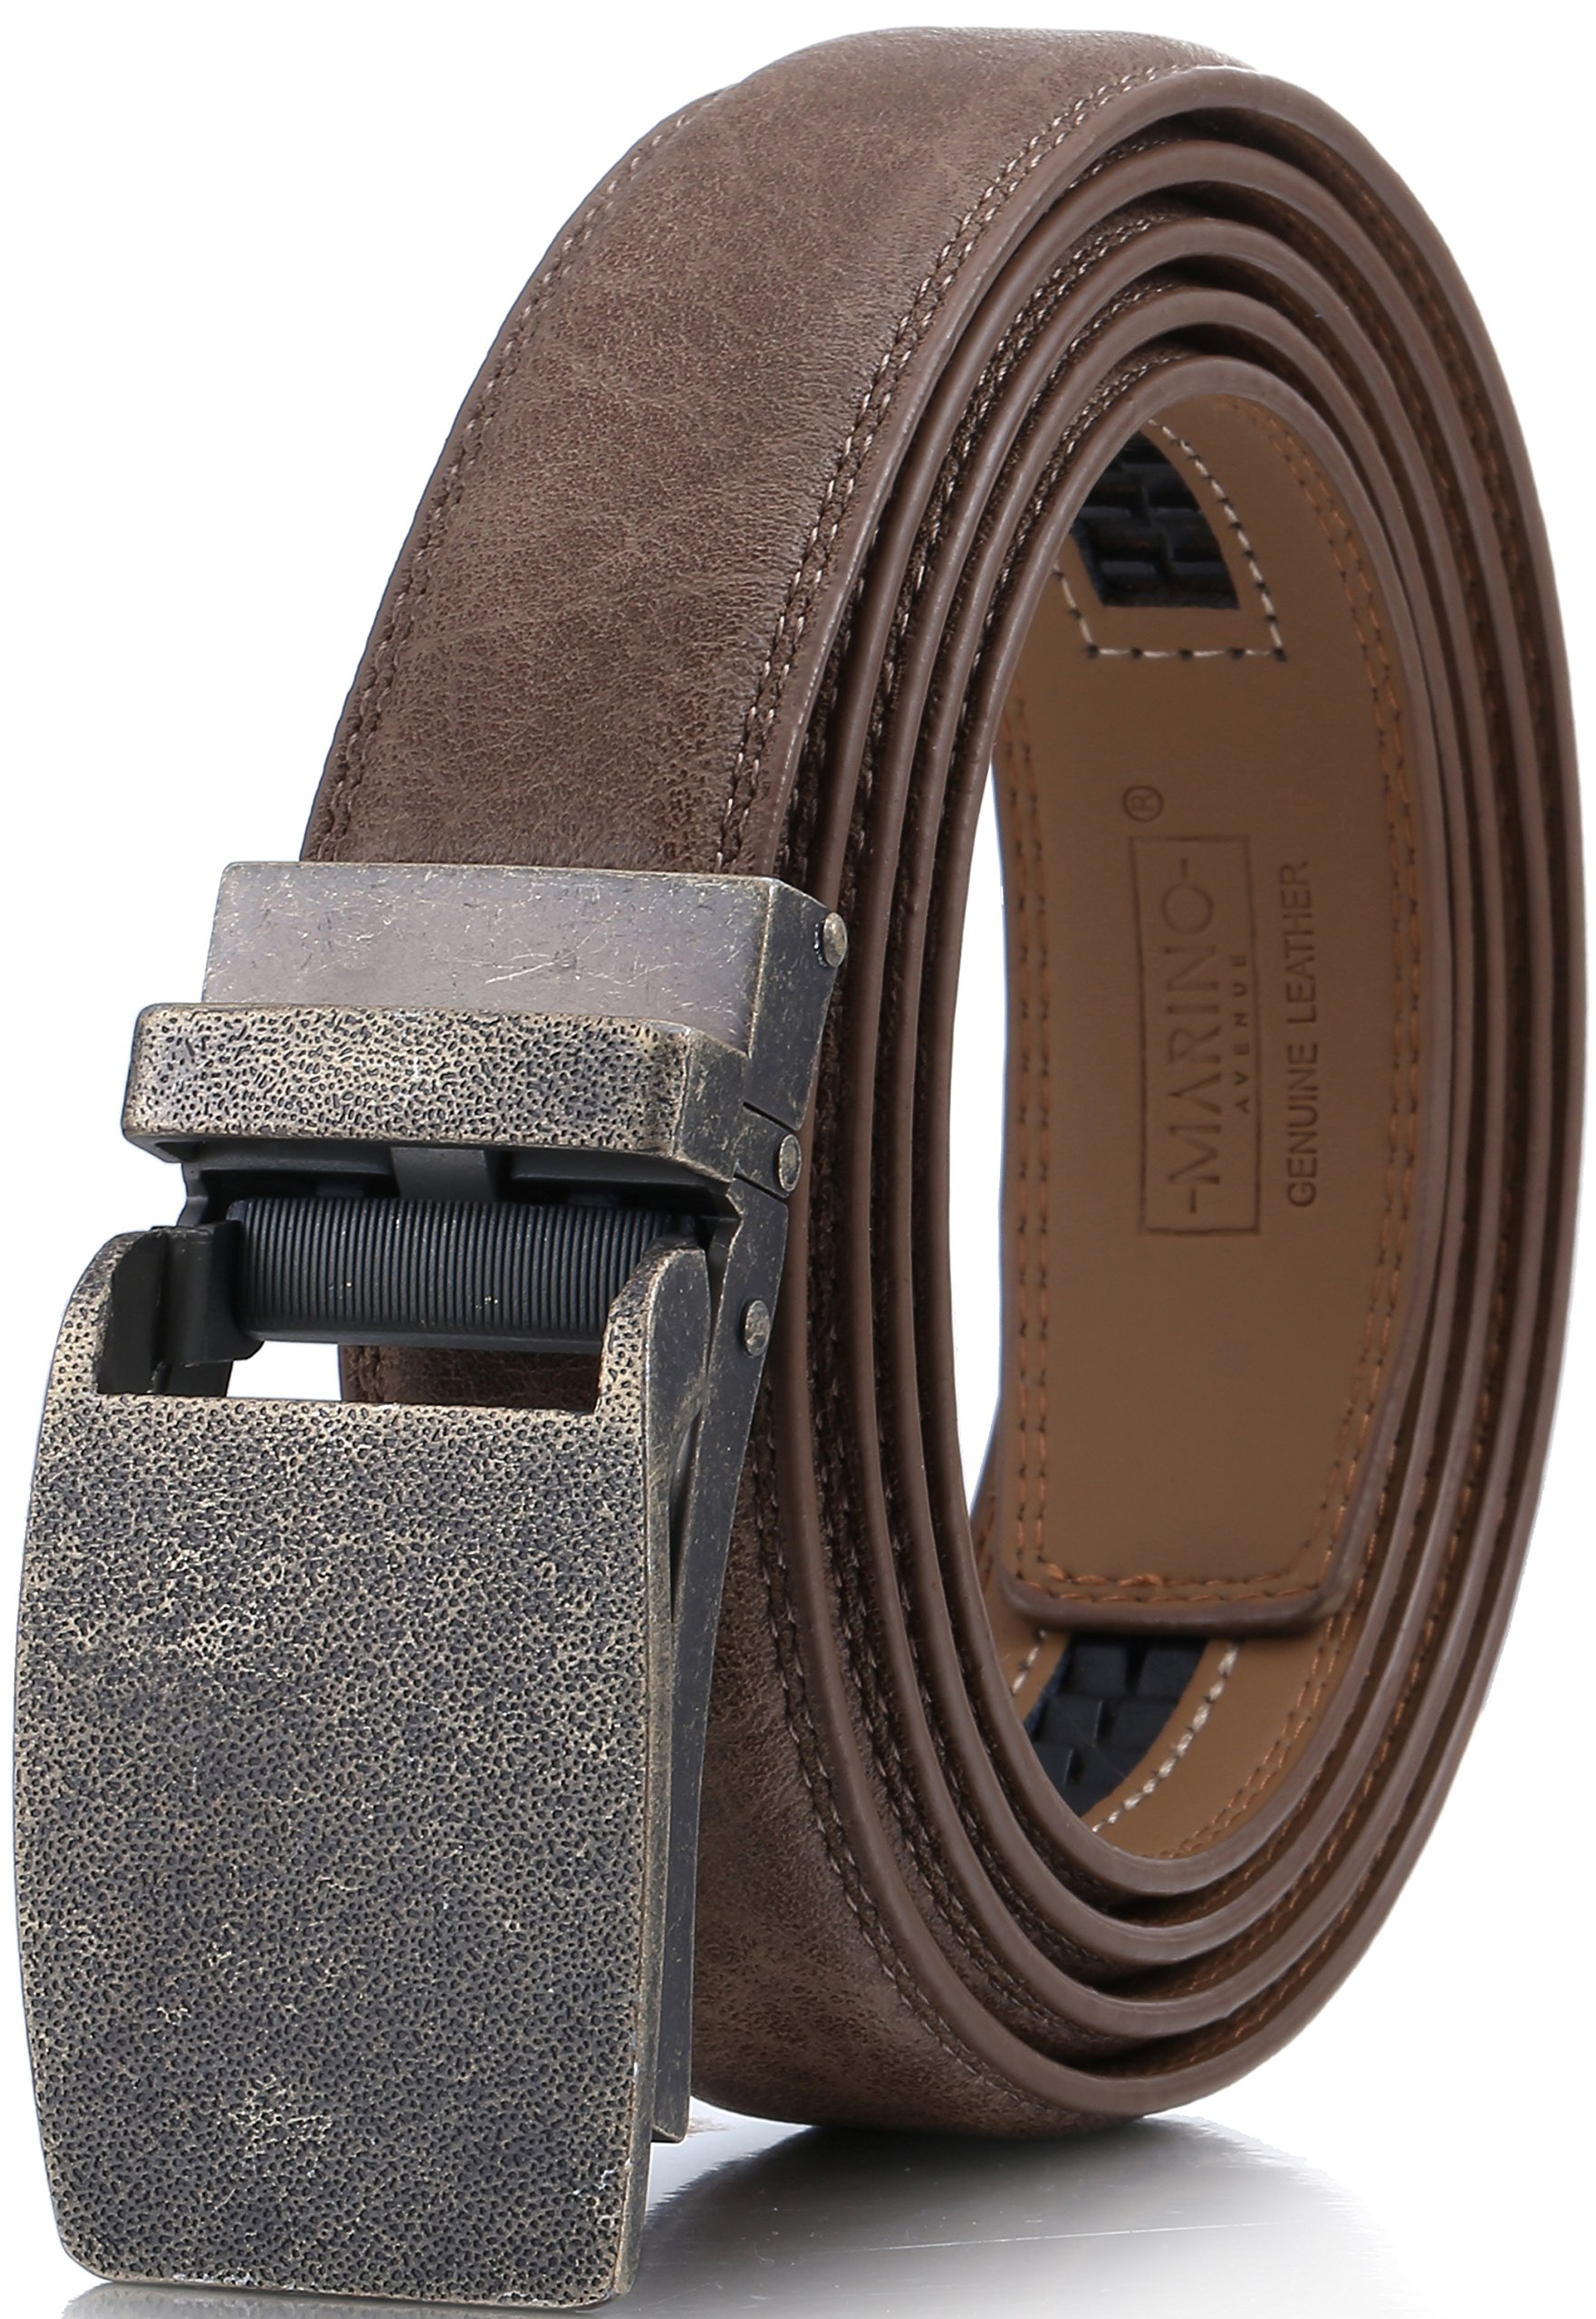 Marino Avenue Men's Genuine Leather Ratchet Dress Belt with Linxx Buckle, Enclosed in an Elegant Gift Box - Walnut - Style 167 - Adjustable from 28'' to 44'' Waist